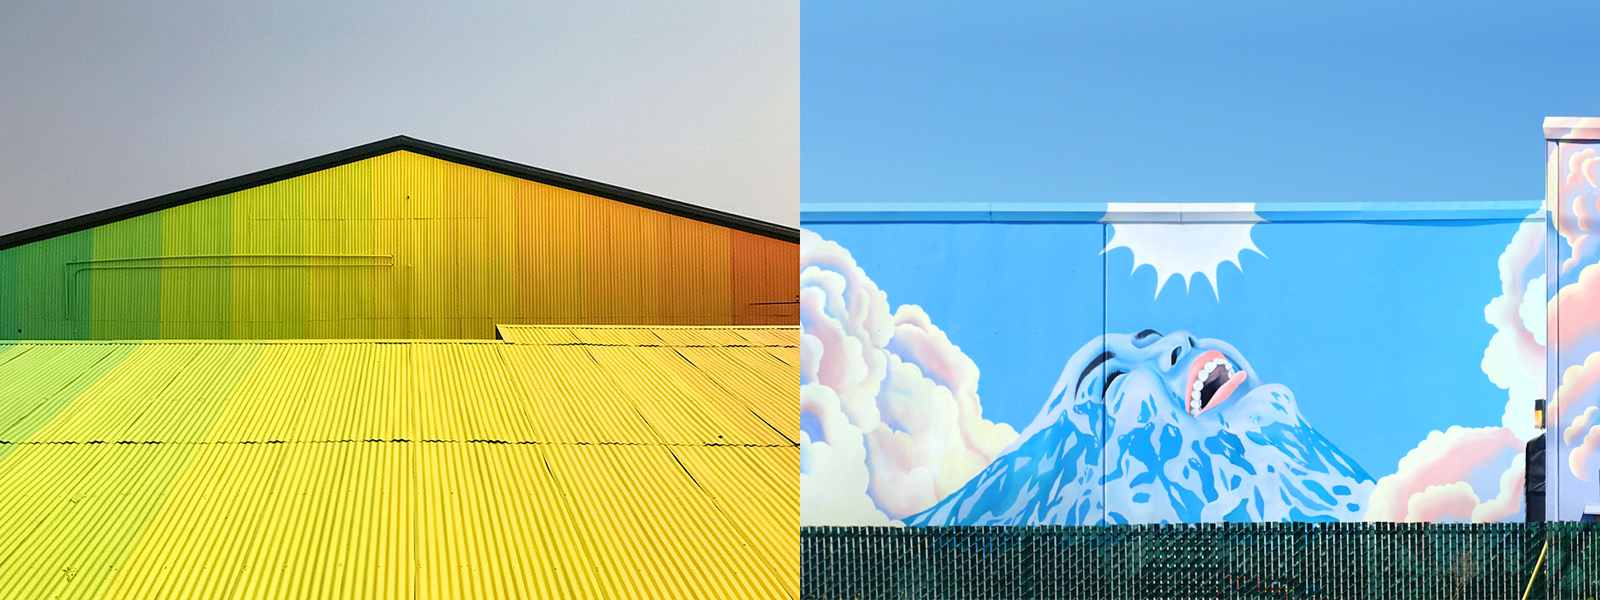 Left: Derek Bruno's  Angles of Incidence  (2017 SODO Track mural). Image  ©  2017 Wiseknave. Right: Celeste Byers's  Above the Clouds  (2018 SODO Track mural). Image  ©  2018 Celeste Byers.